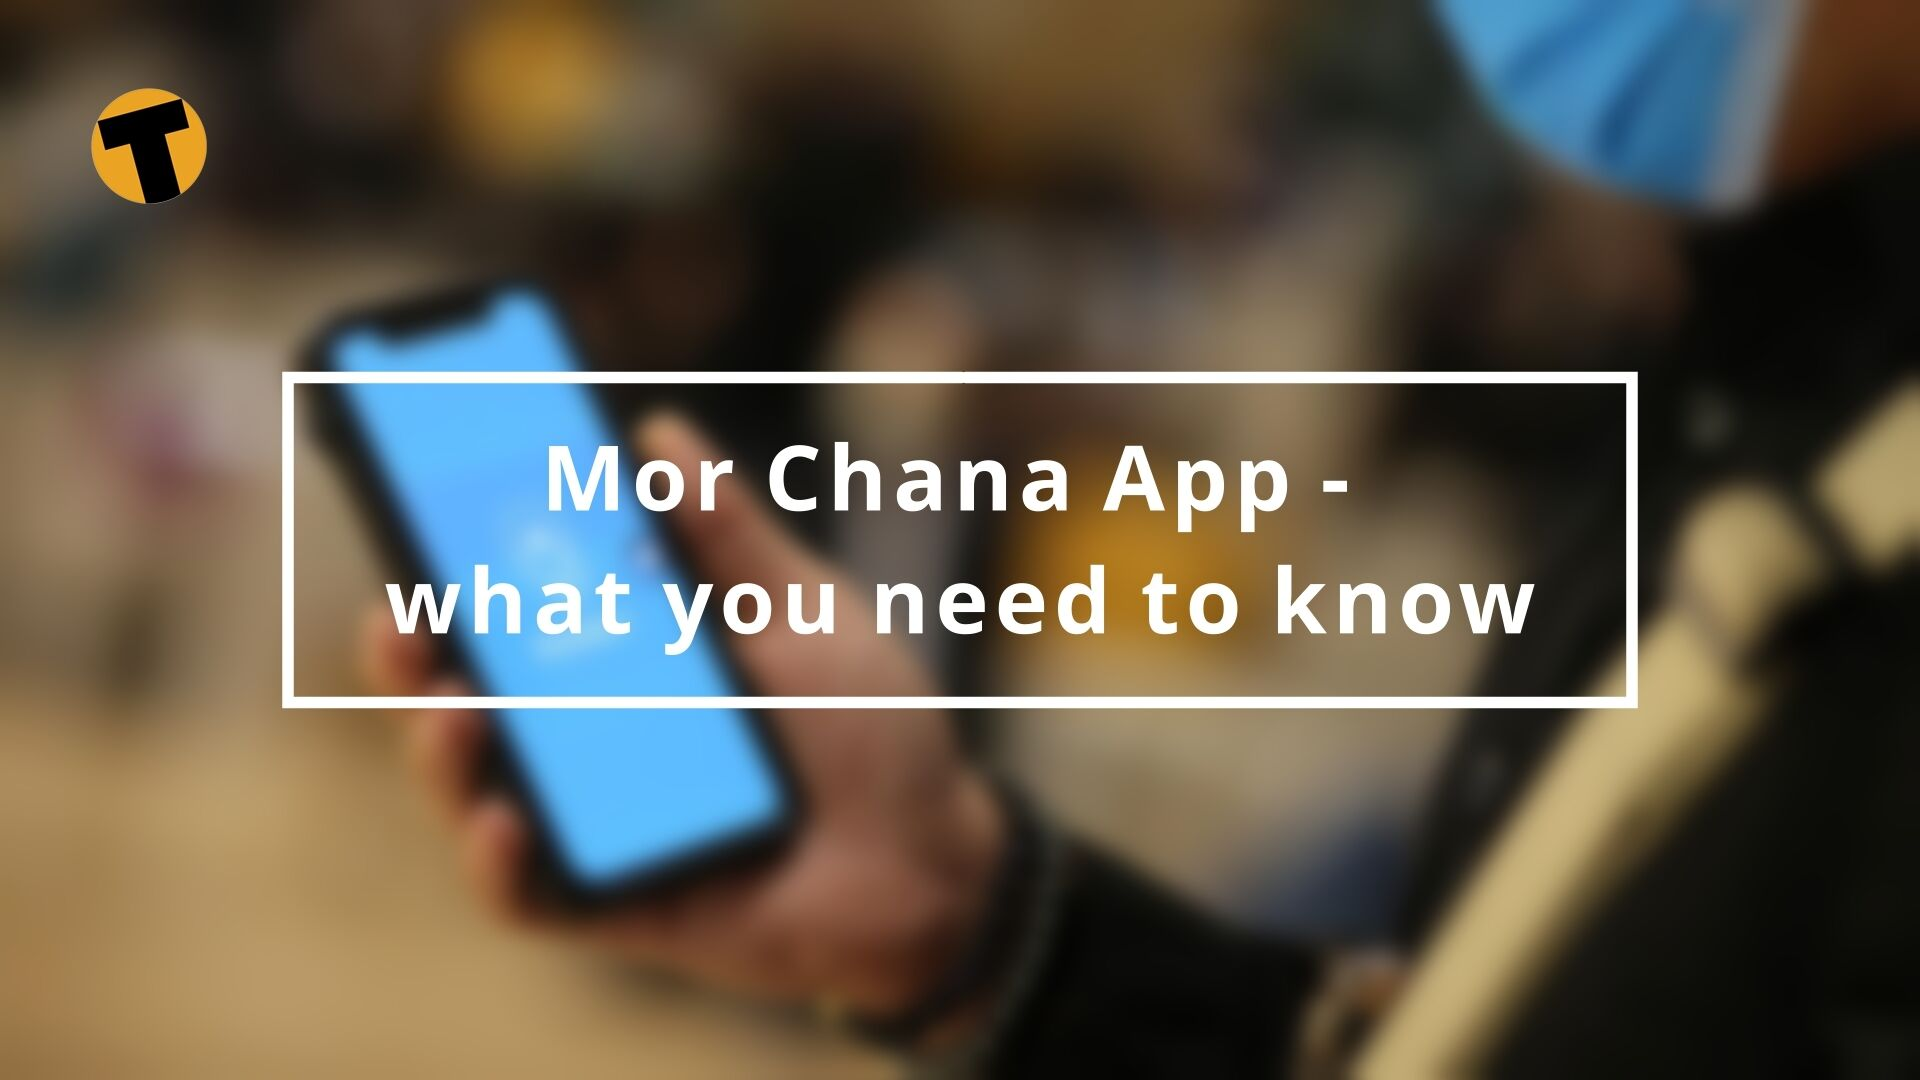 Mor Chana app – what you need to know | The Thaiger